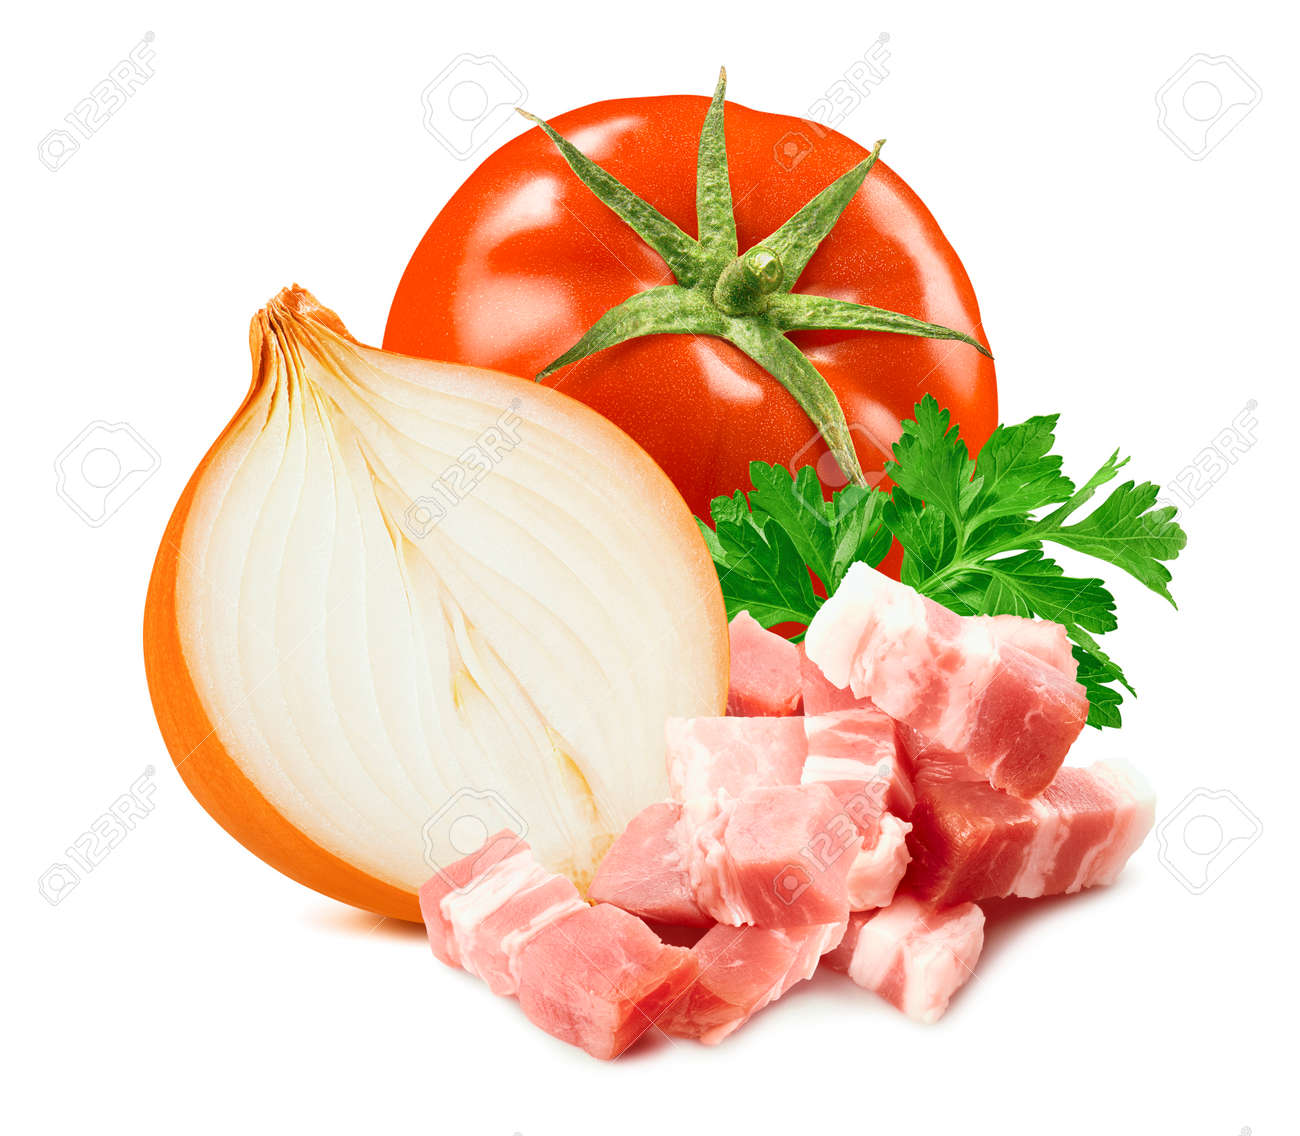 Tomato, onion, parsley and ham isolated on white - 168223482